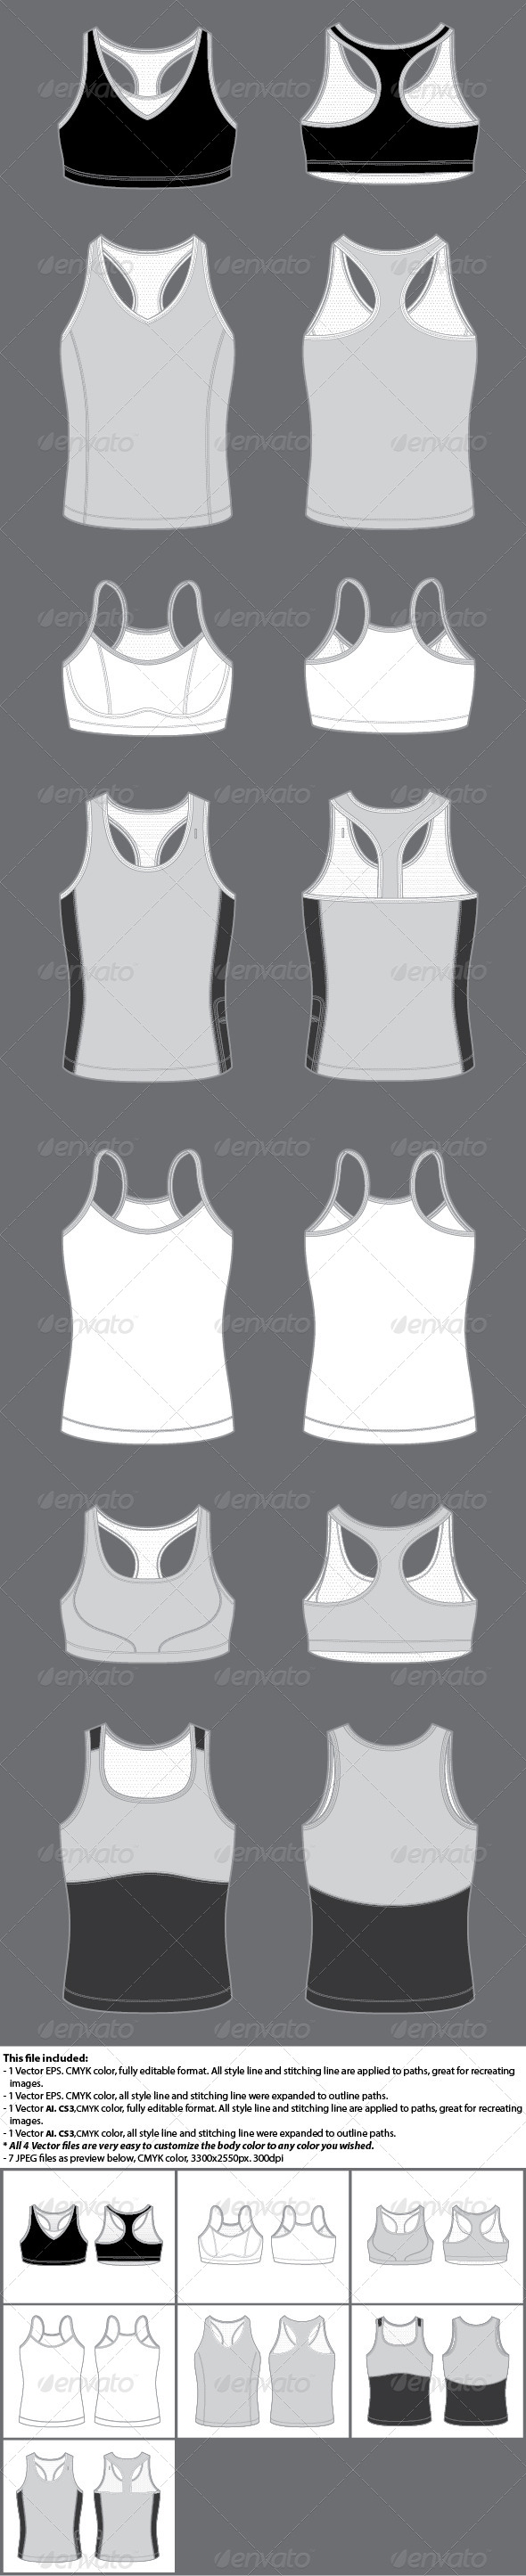 GraphicRiver Women s Active Wear Template Bra and Tank 4587534